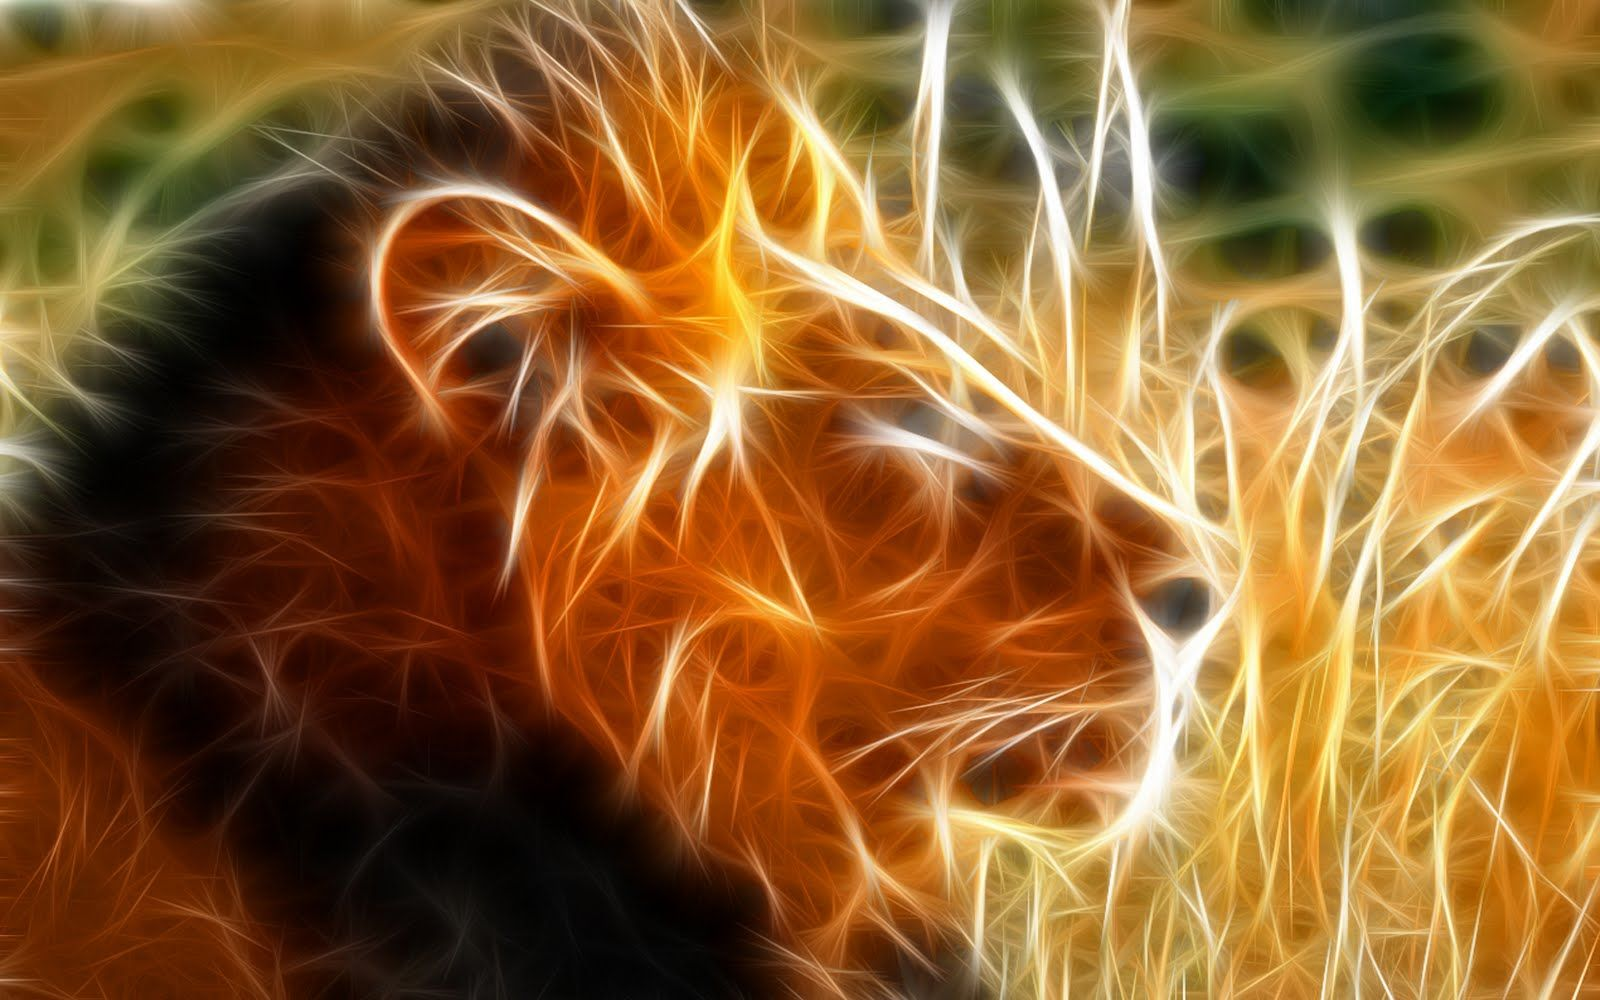 Hd wallpaper lion - Hd Wallpapers Wallpapers Box Abstract Lion Hd Wallpapers Backgrounds